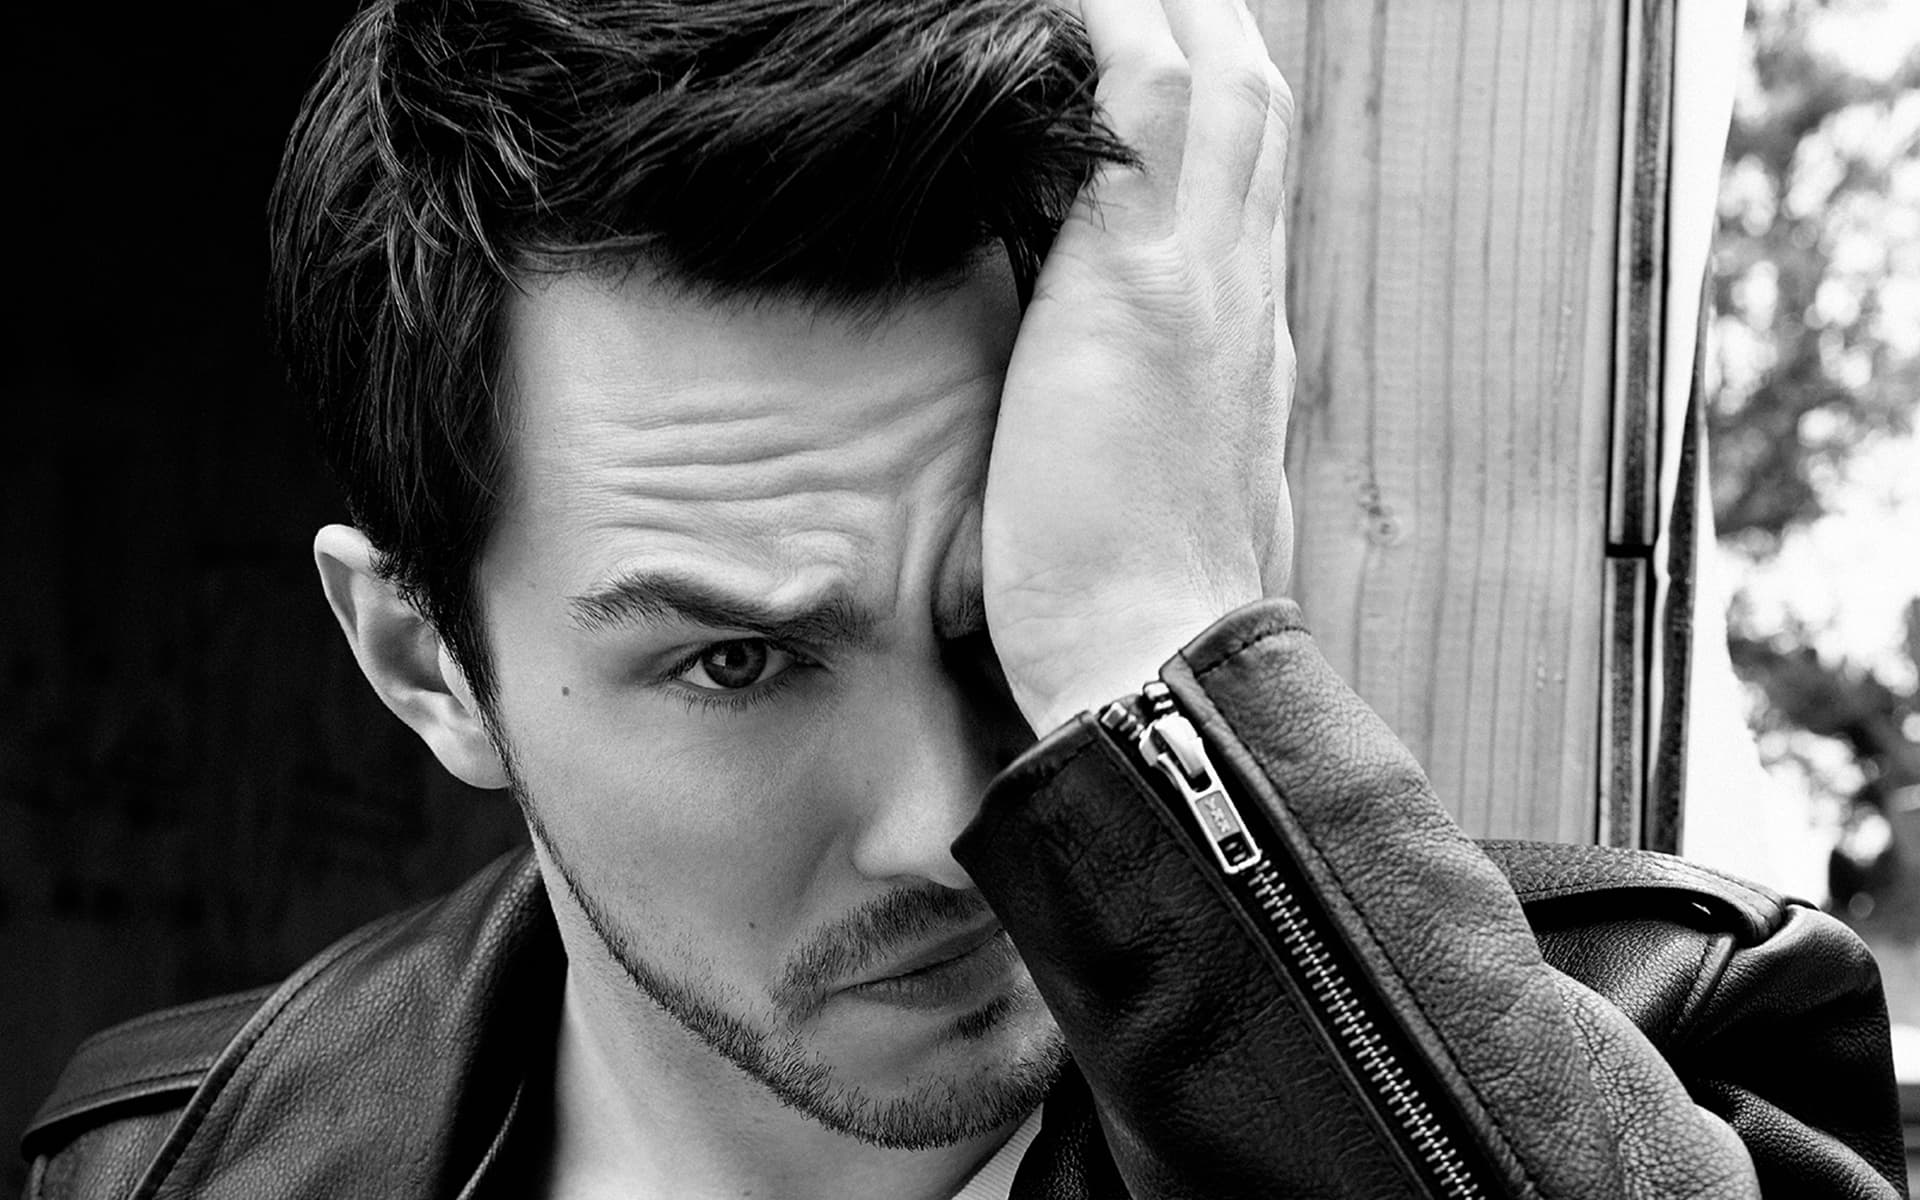 nicholas hoult wallpaper background - photo #4